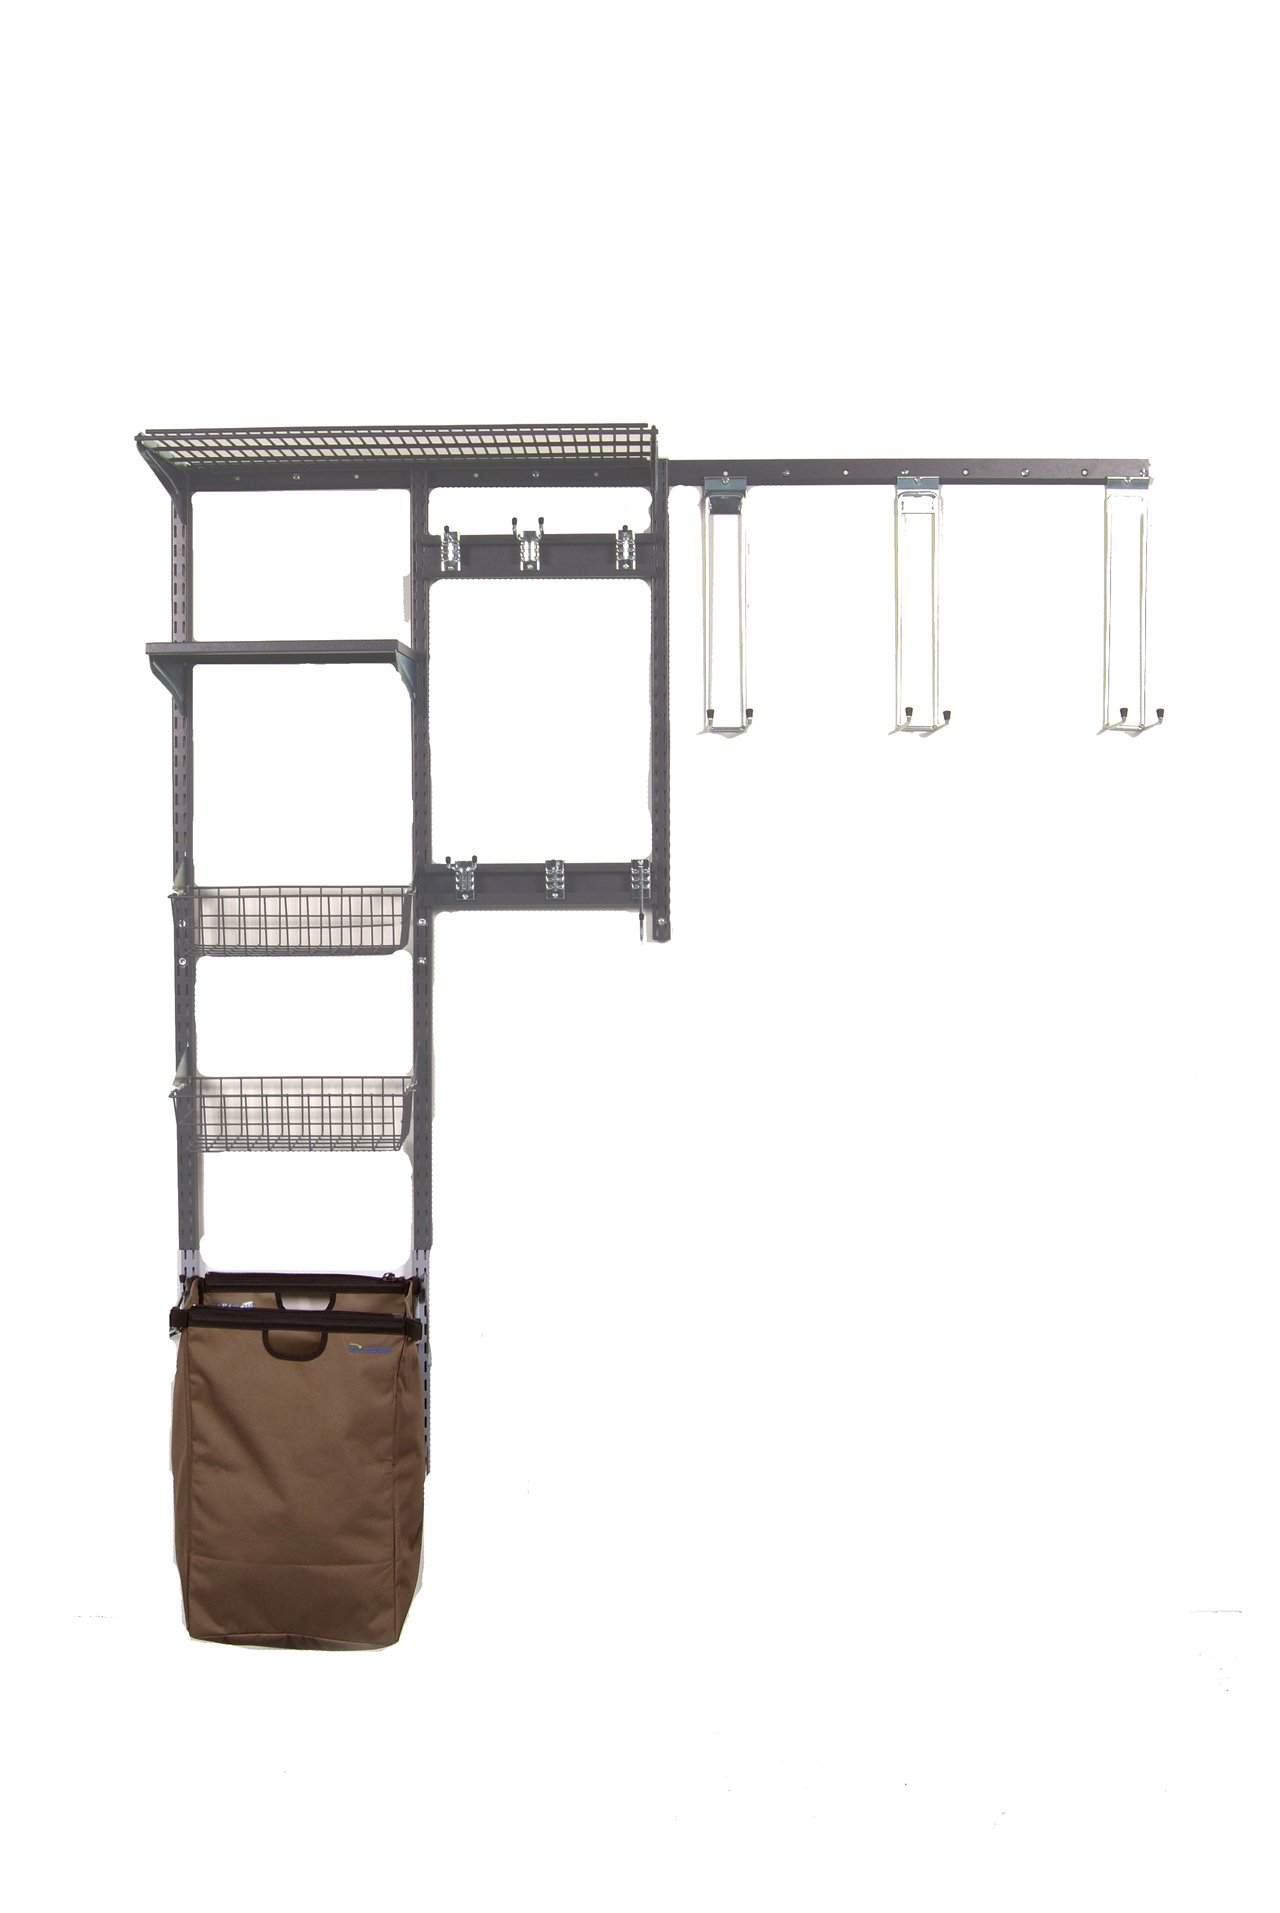 Triton Products 1660 Storability Shed Wall Mount Storage System 66-Inch L by 63-Inch H with Heavy Duty Hanging Hooks, Shop/Rag Bag, Wire Shelf, 2 Wire Baskets, Steel Shelf and Hardware